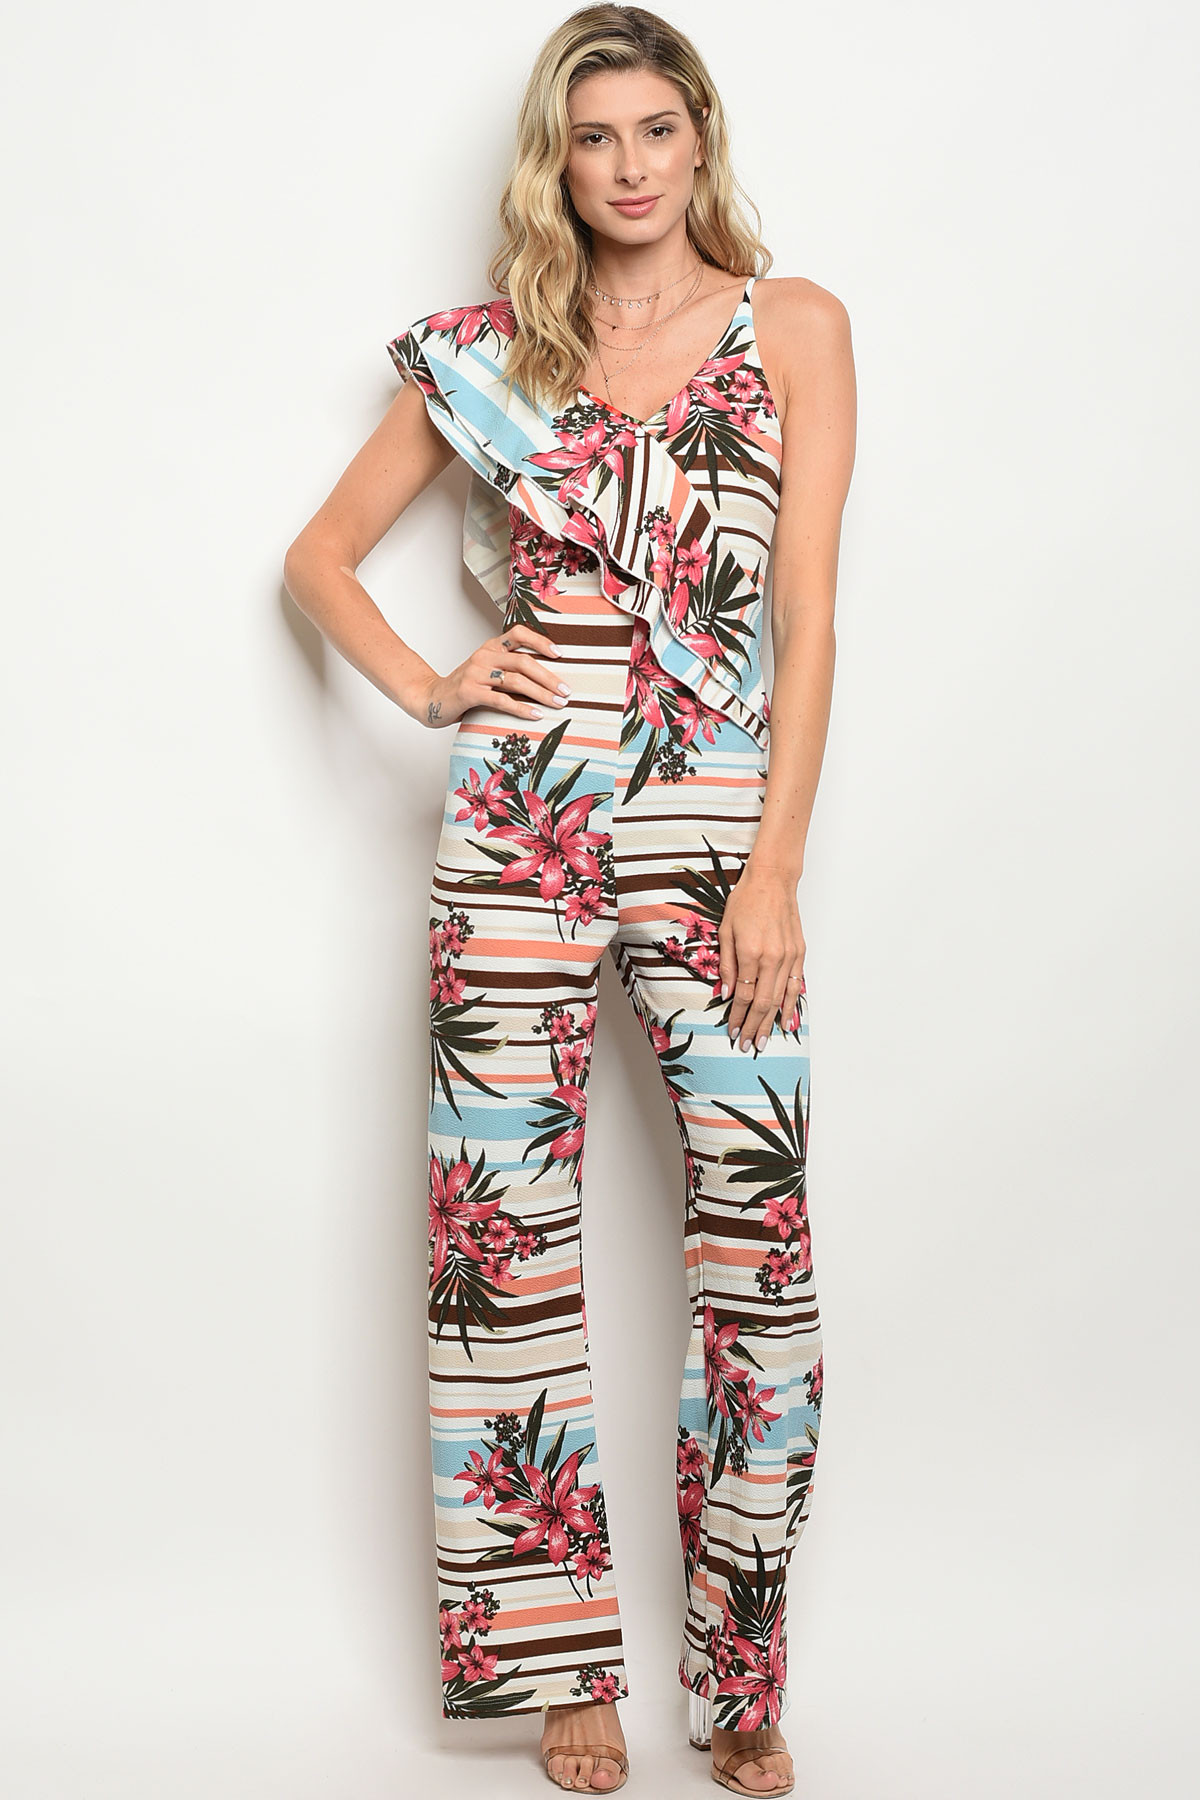 155bdb9364 ... OFF WHITE ROSE FLORAL JUMPSUIT 2-2- · Larger Photo ...